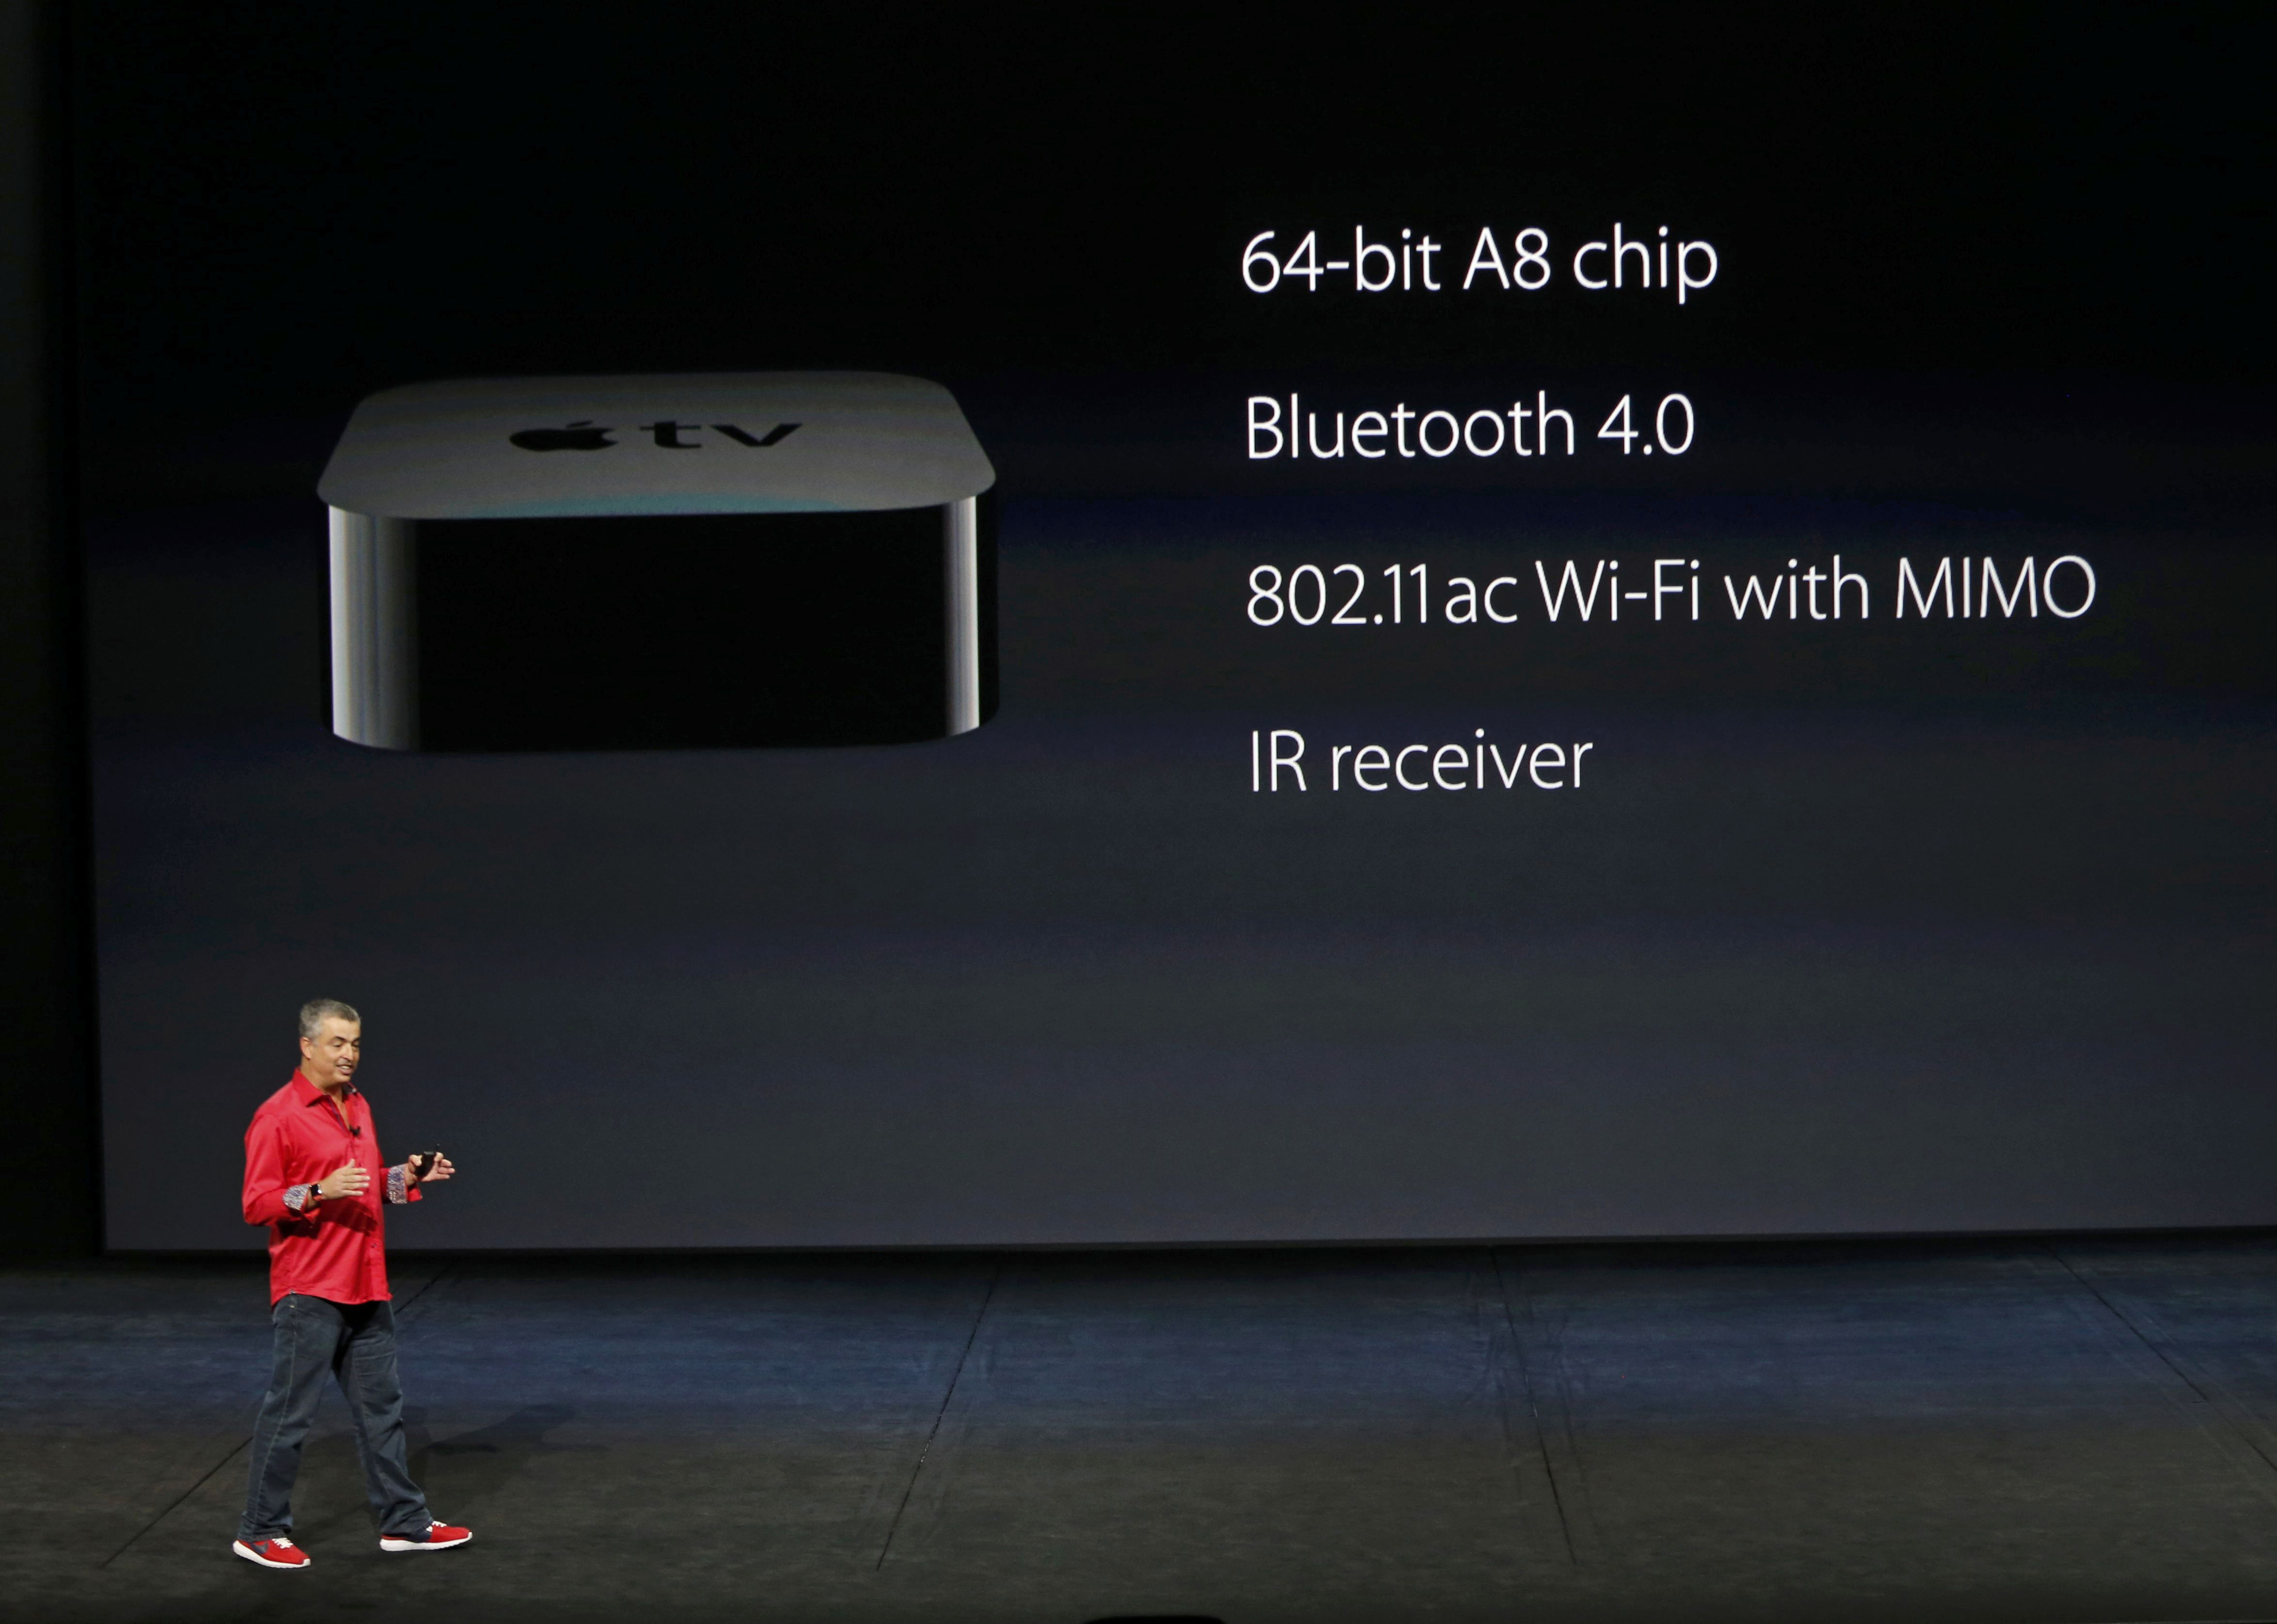 Eddie Cue, Apple's senior vice president of Internet Software and Services, discusses Apple TV hardware during an Apple media event in San Francisco, California, September 9, 2015. Reuters/Beck Diefenbach